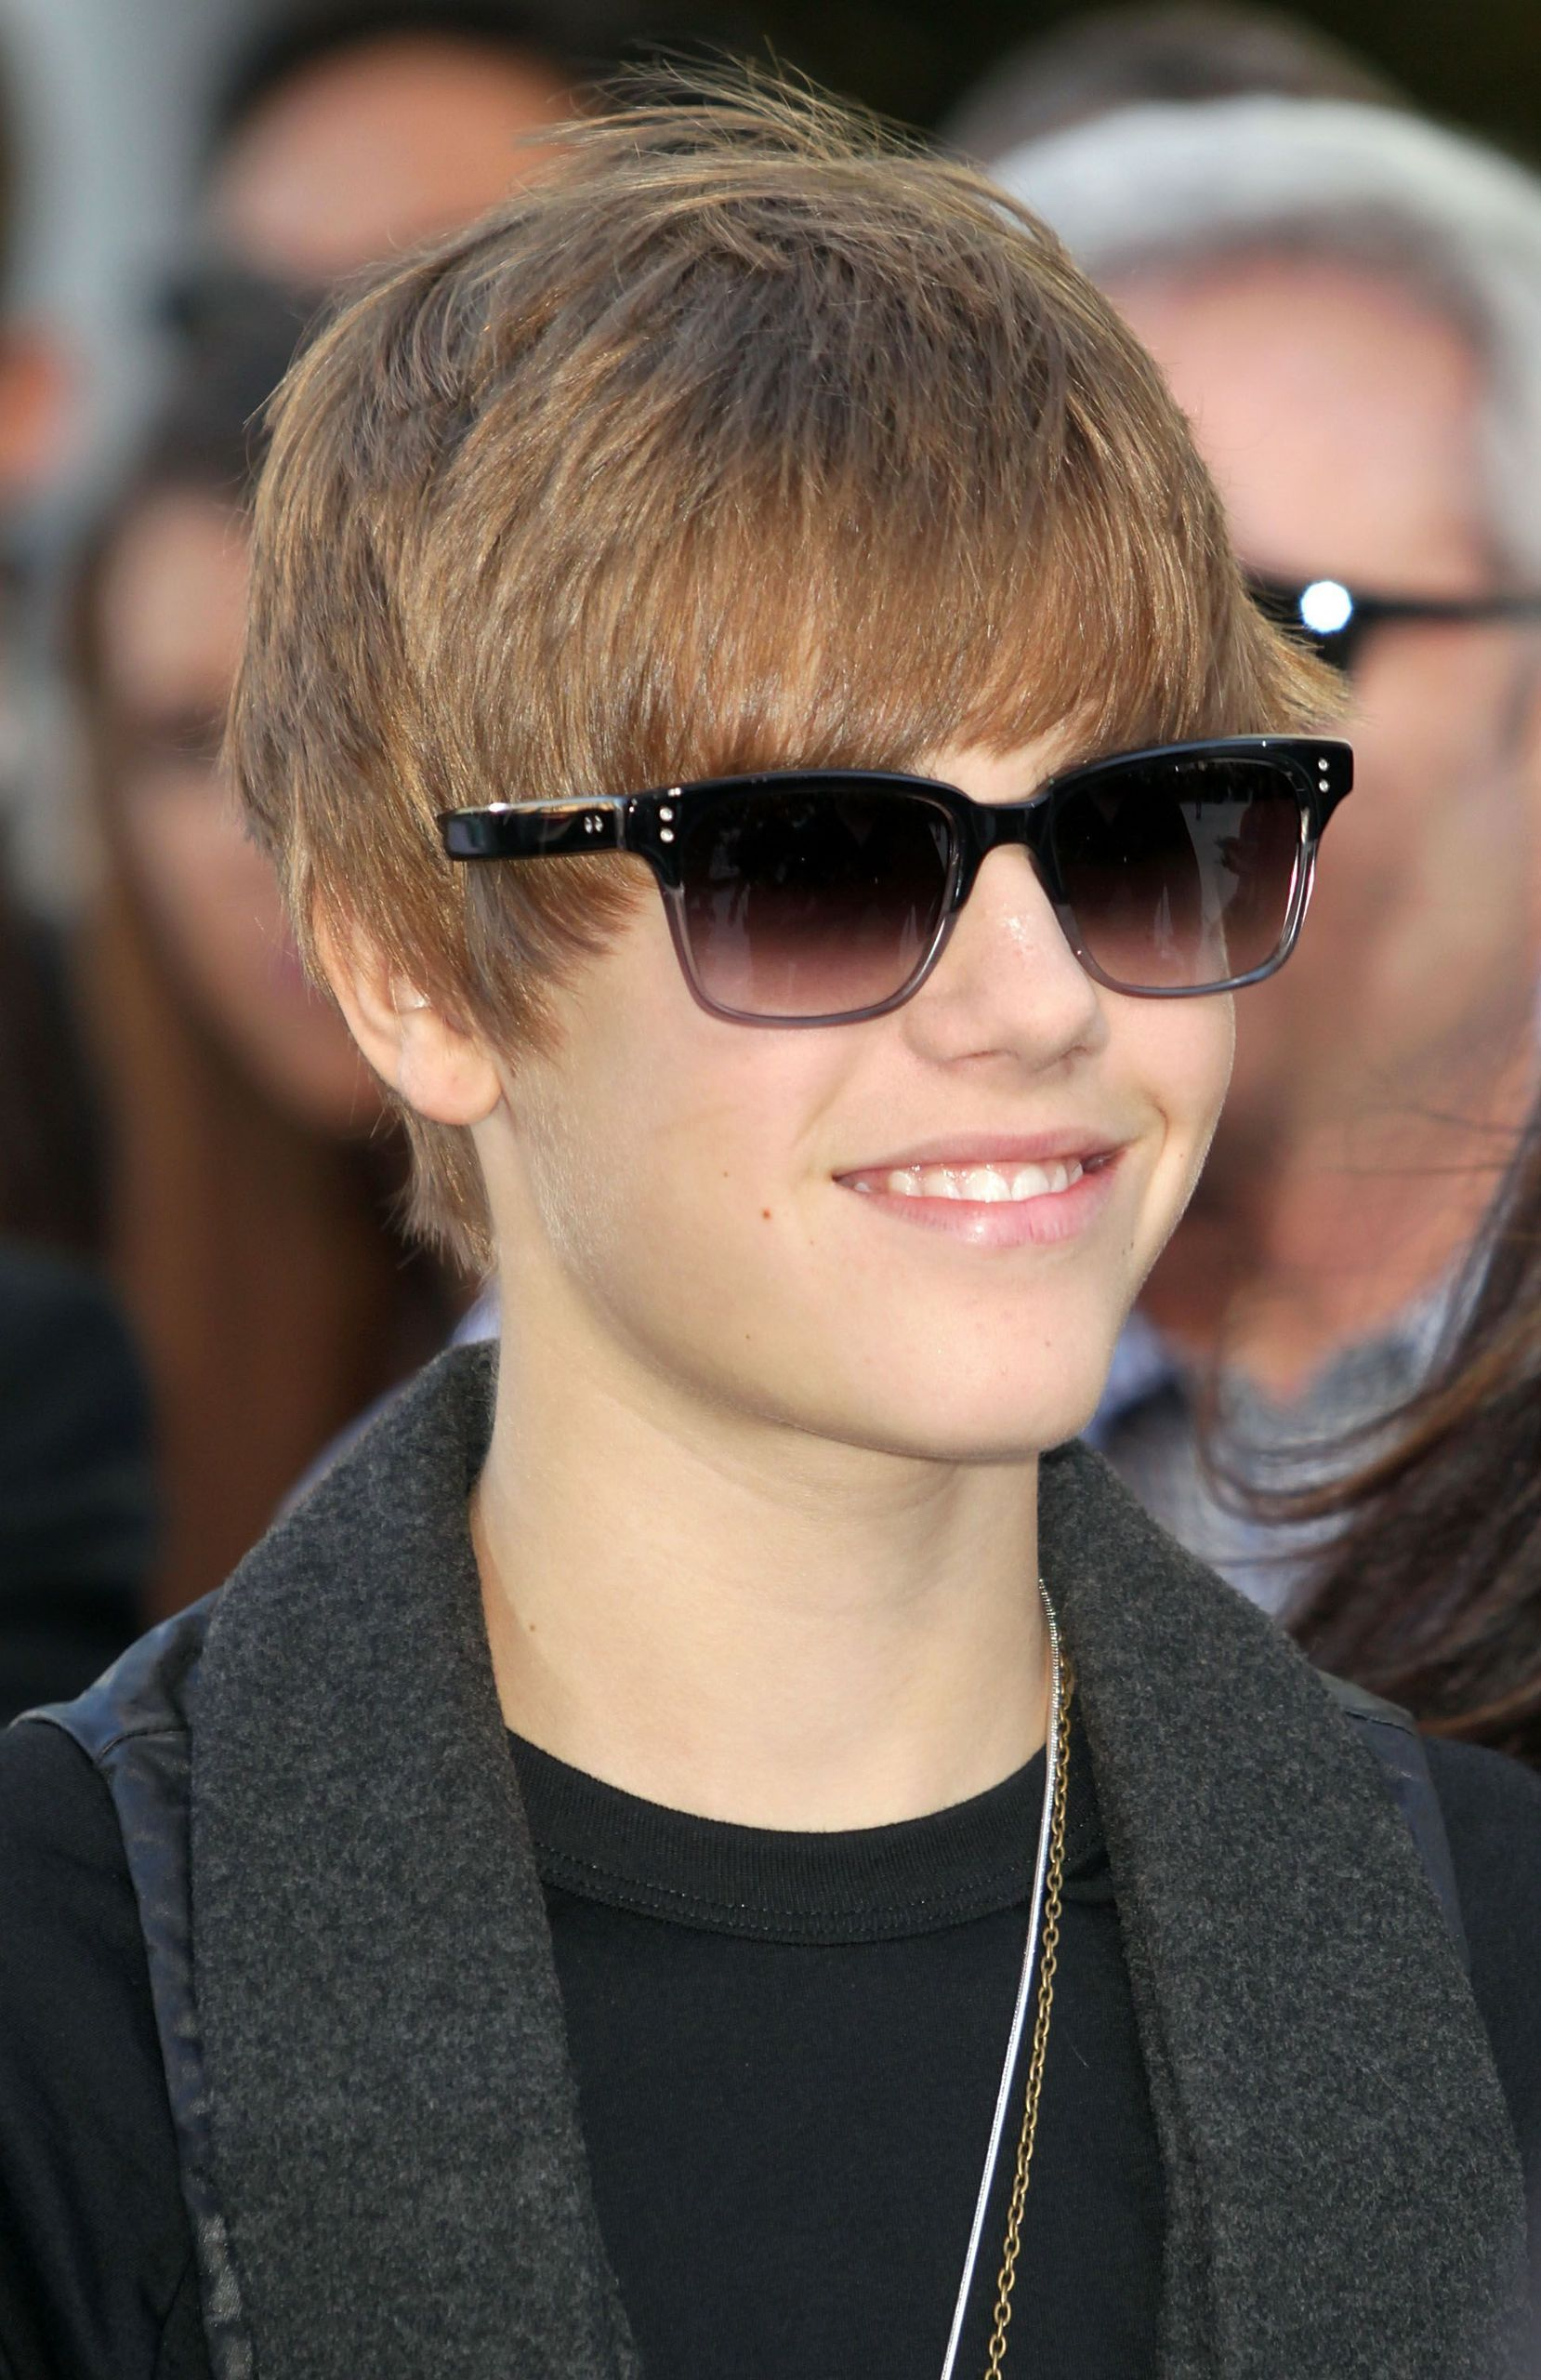 Justin Bieber Wallpapers 2011 Free Download